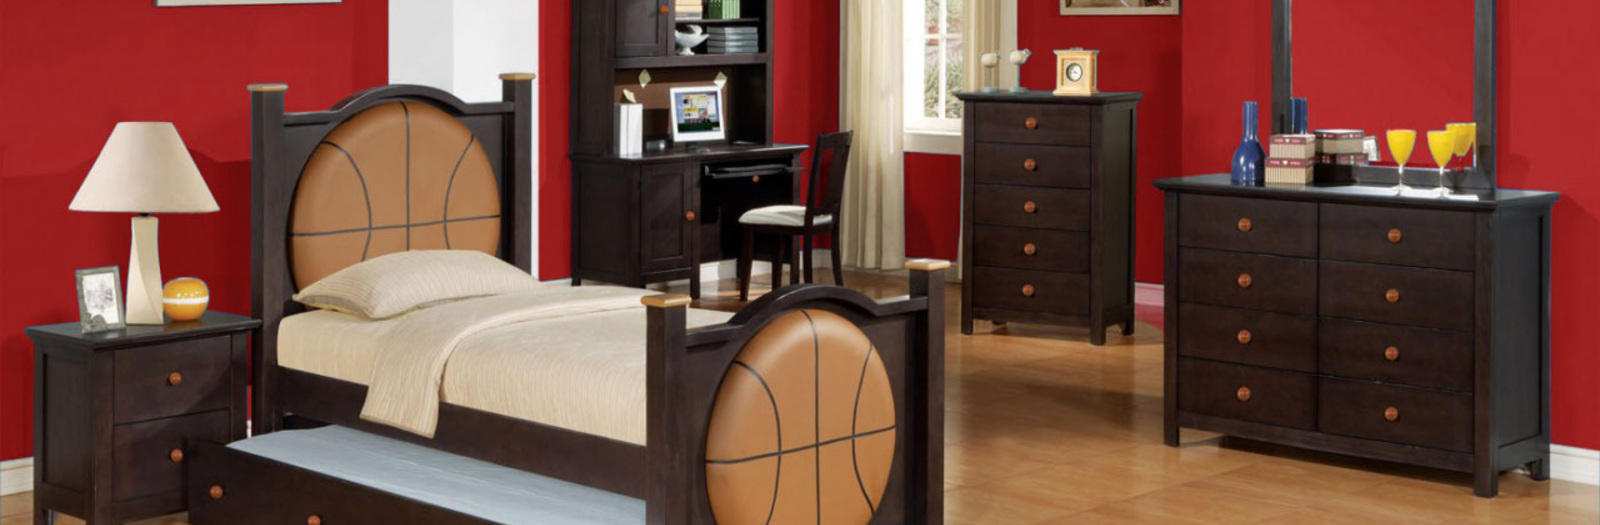 Transitional Kids Room with basketball themed bedroom